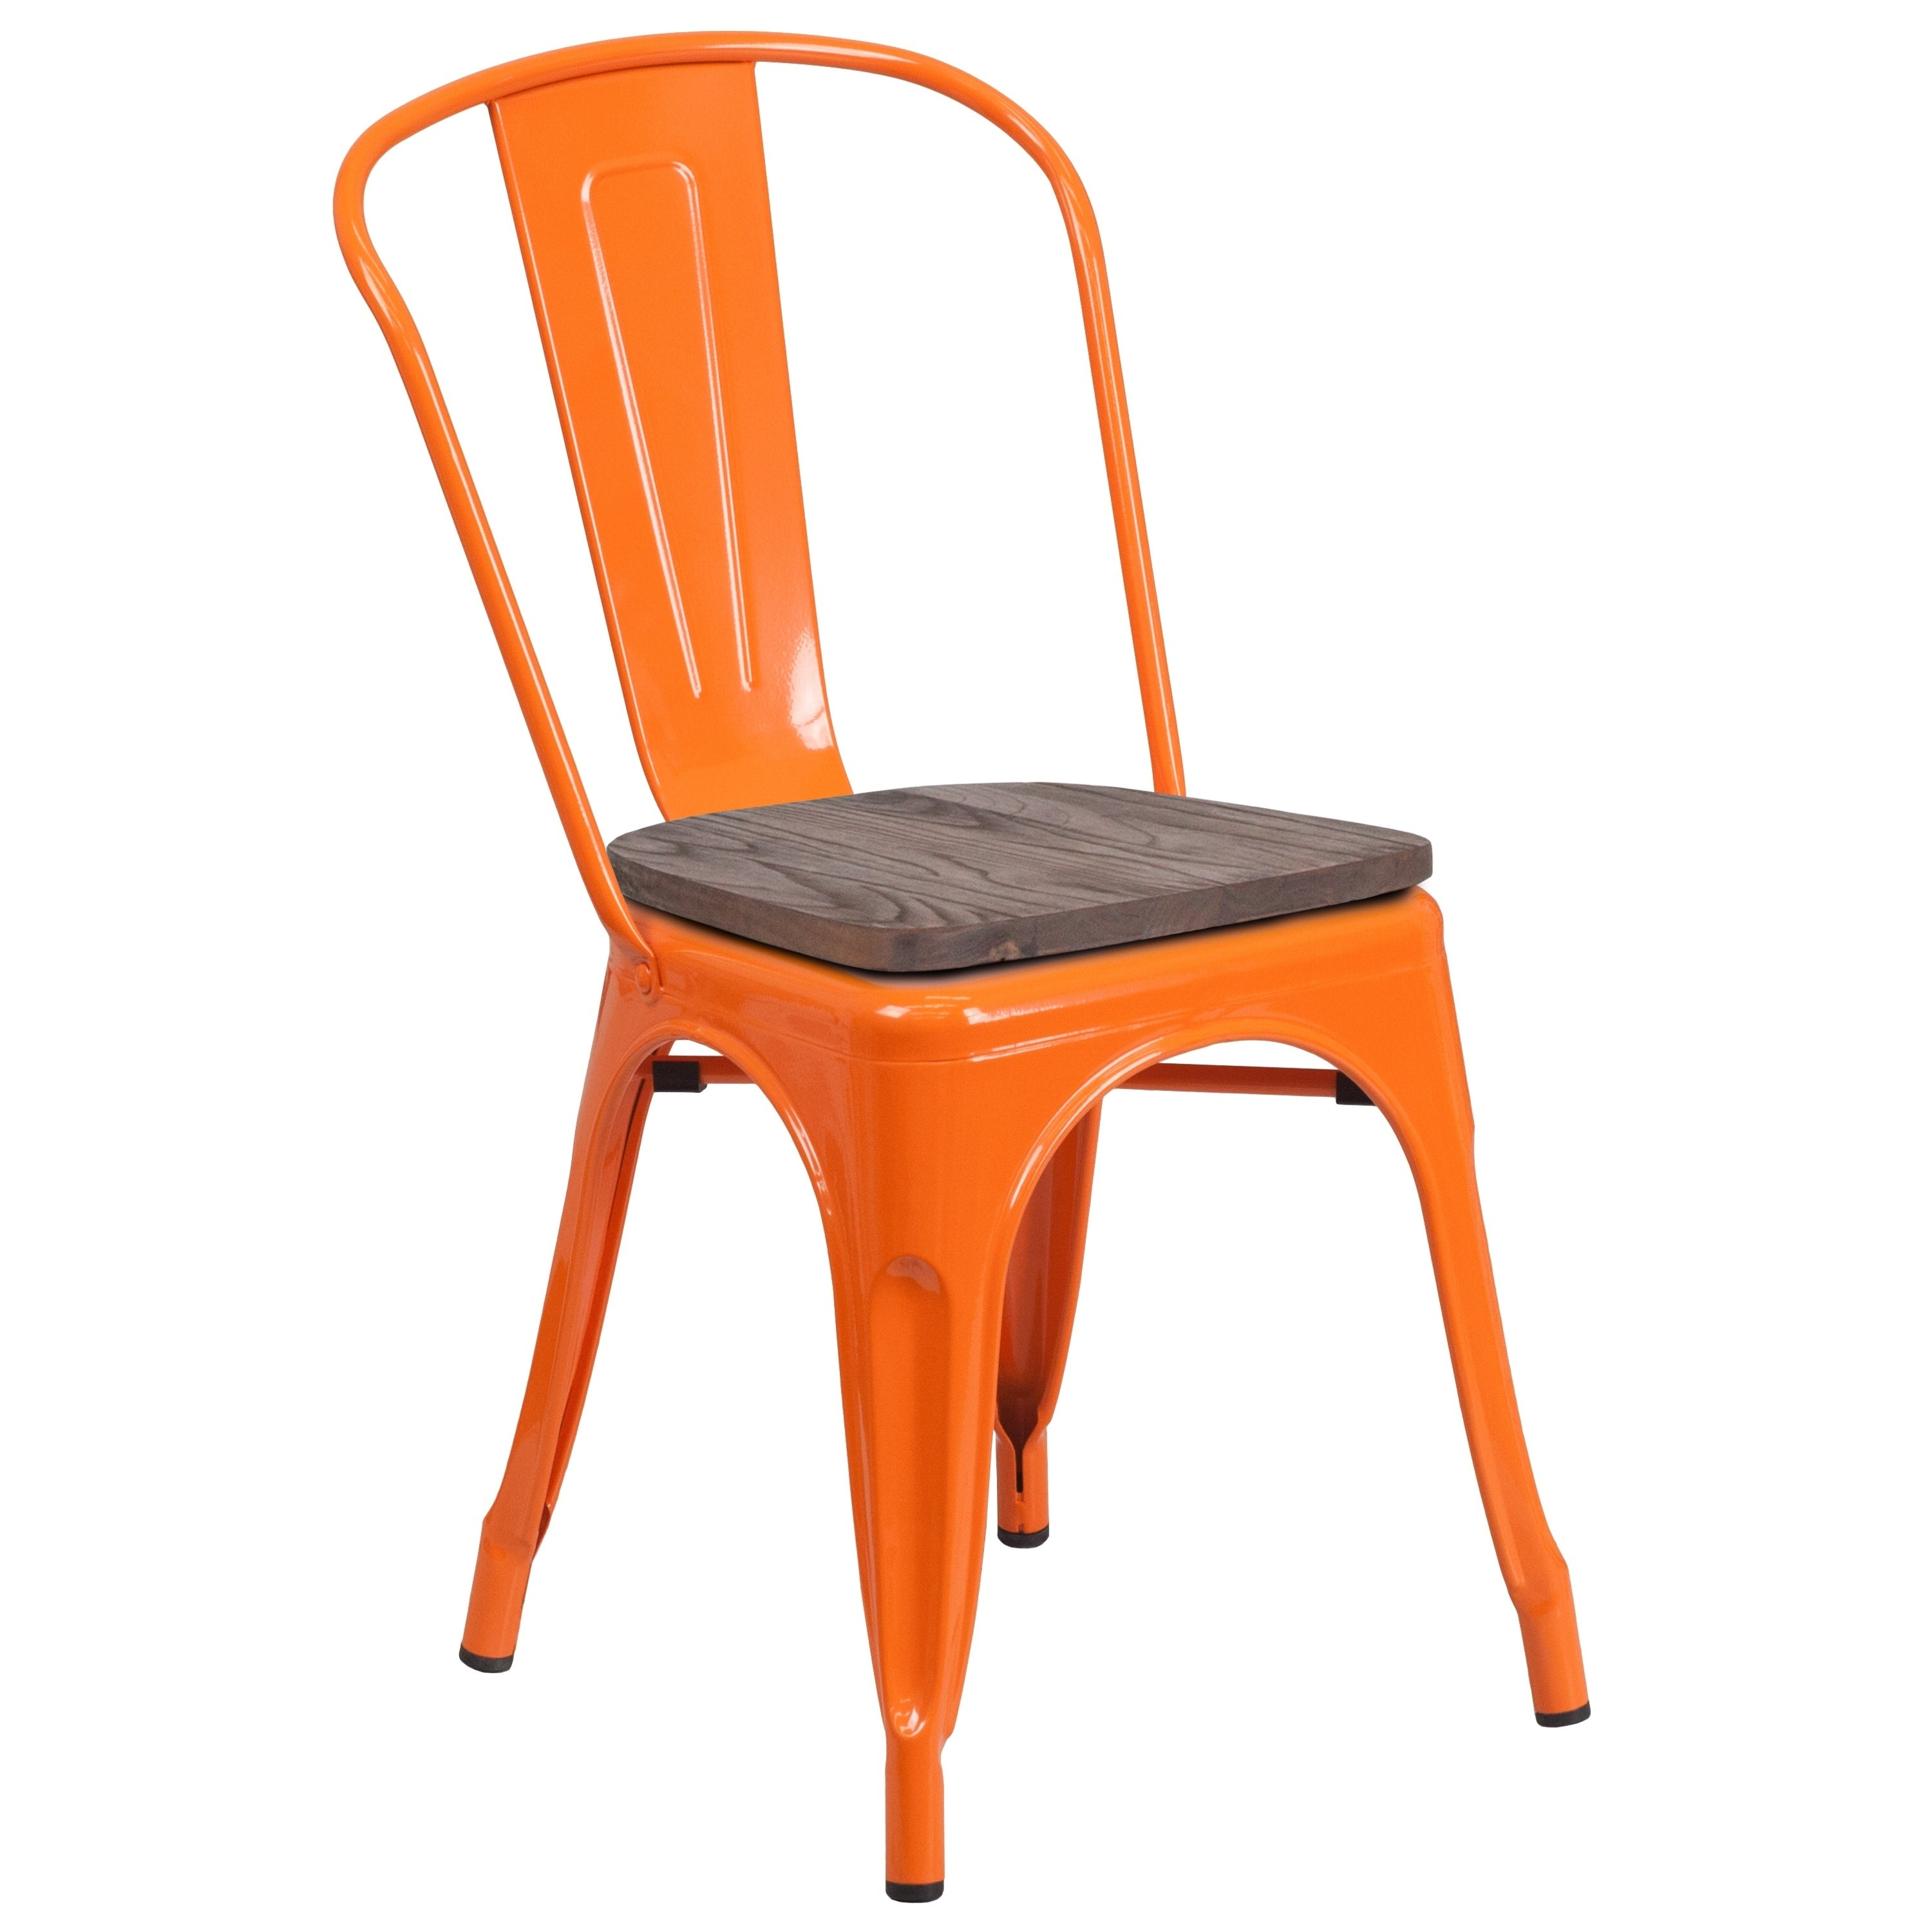 INDUSTRIAL VINTAGE STACKING CHAIR ORANGE PLASTIC SEAT STACKABLE CAFE CHAIR